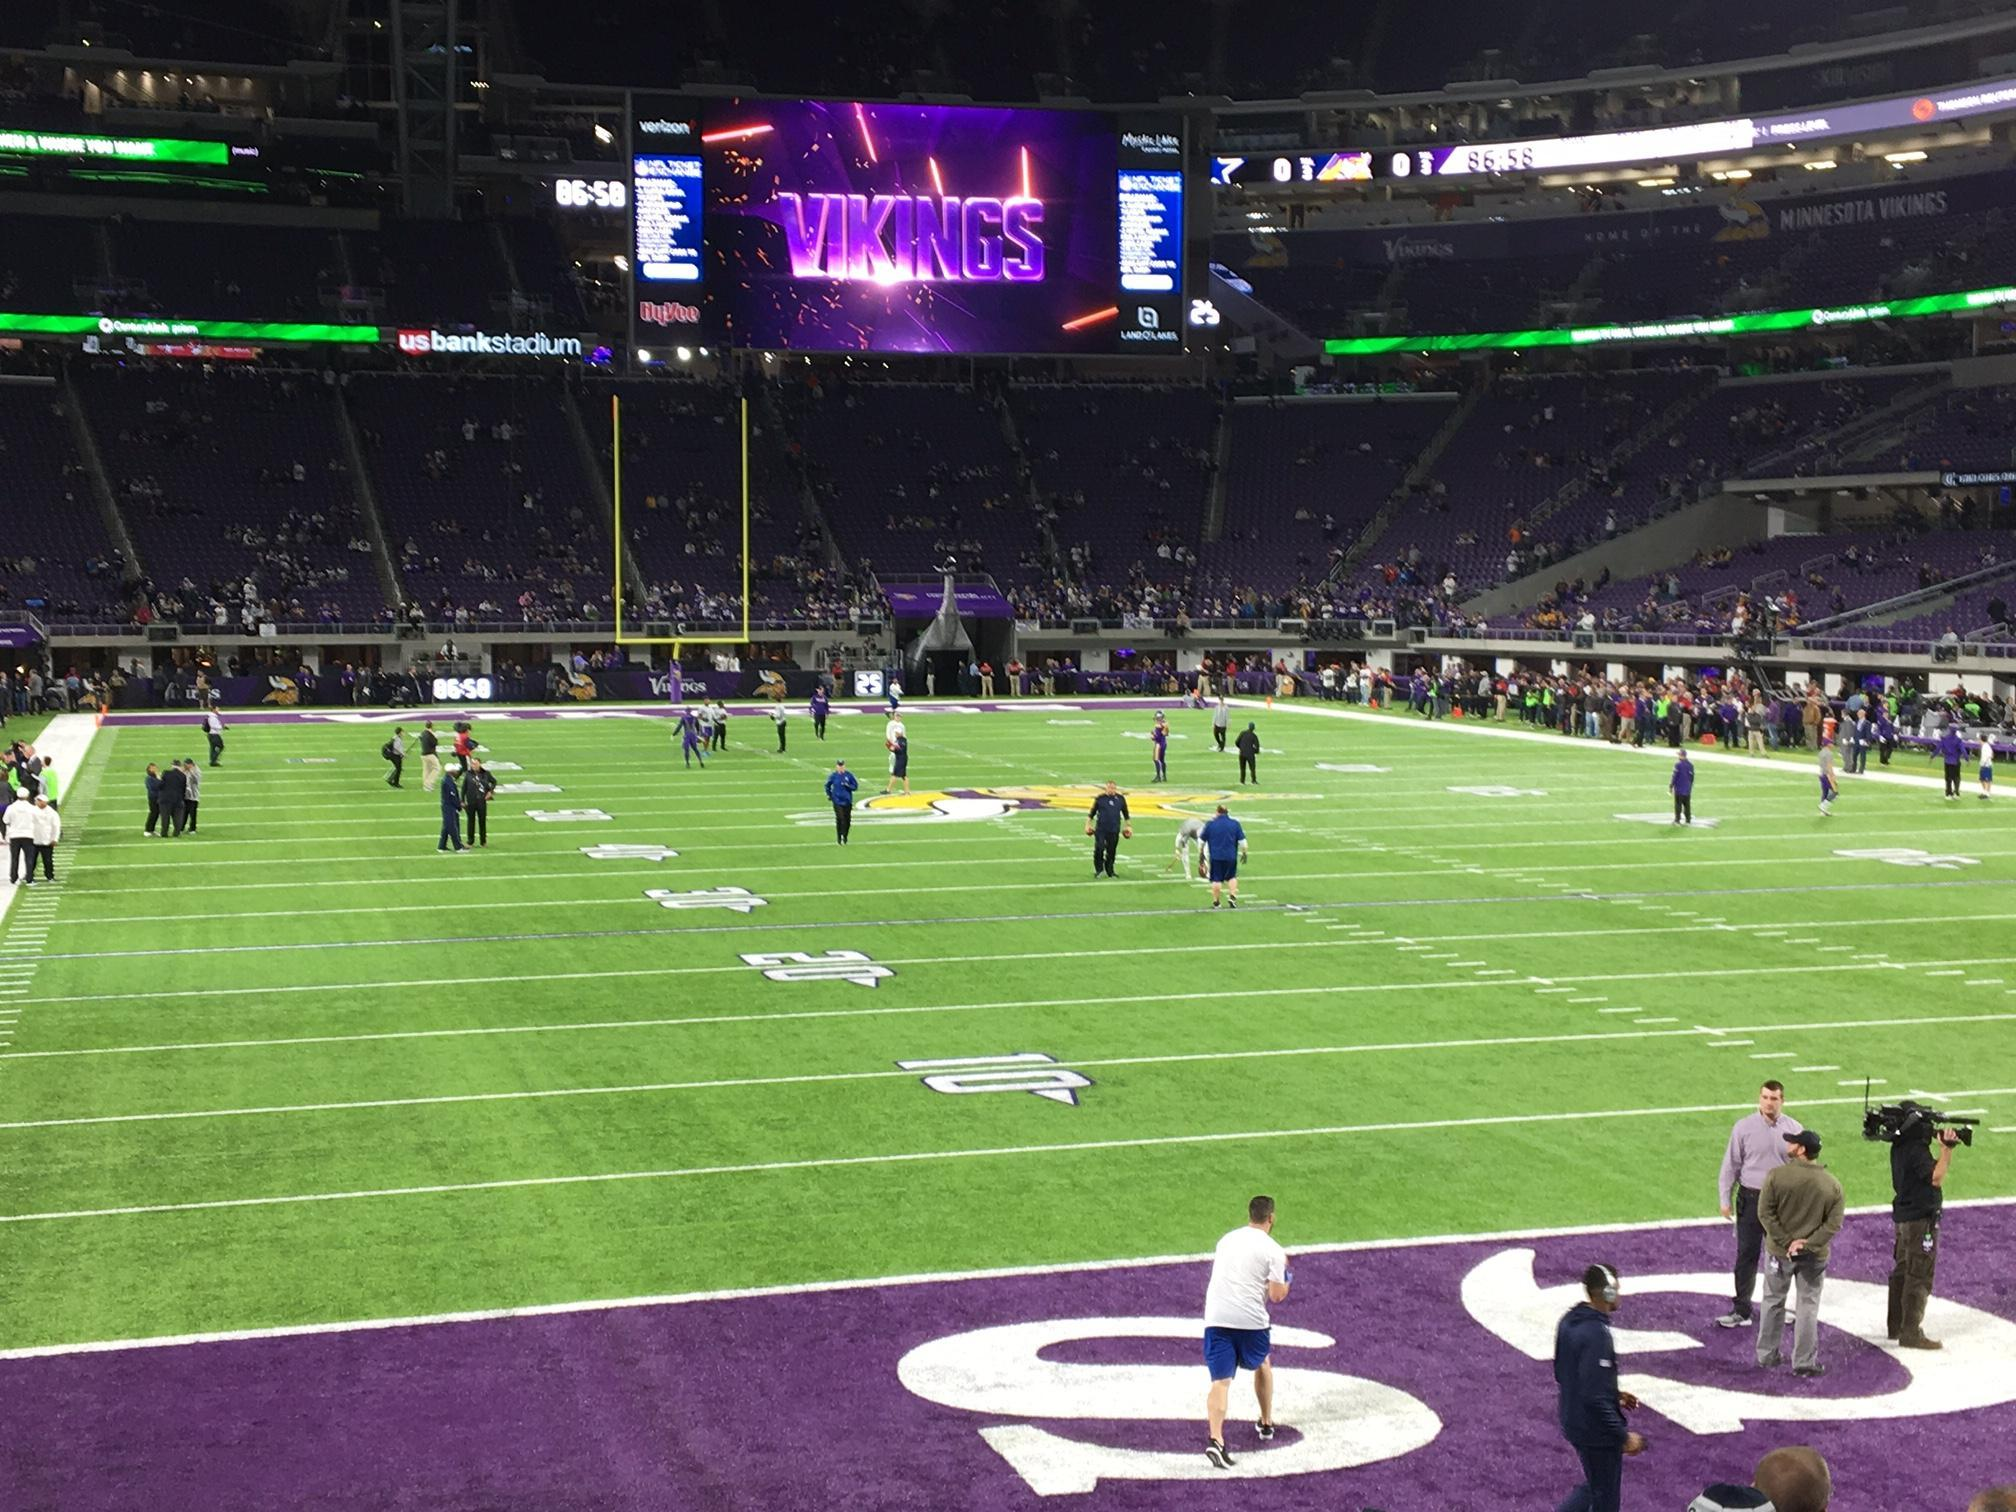 U.S. Bank Stadium Section 143 Row 11 Seat 21